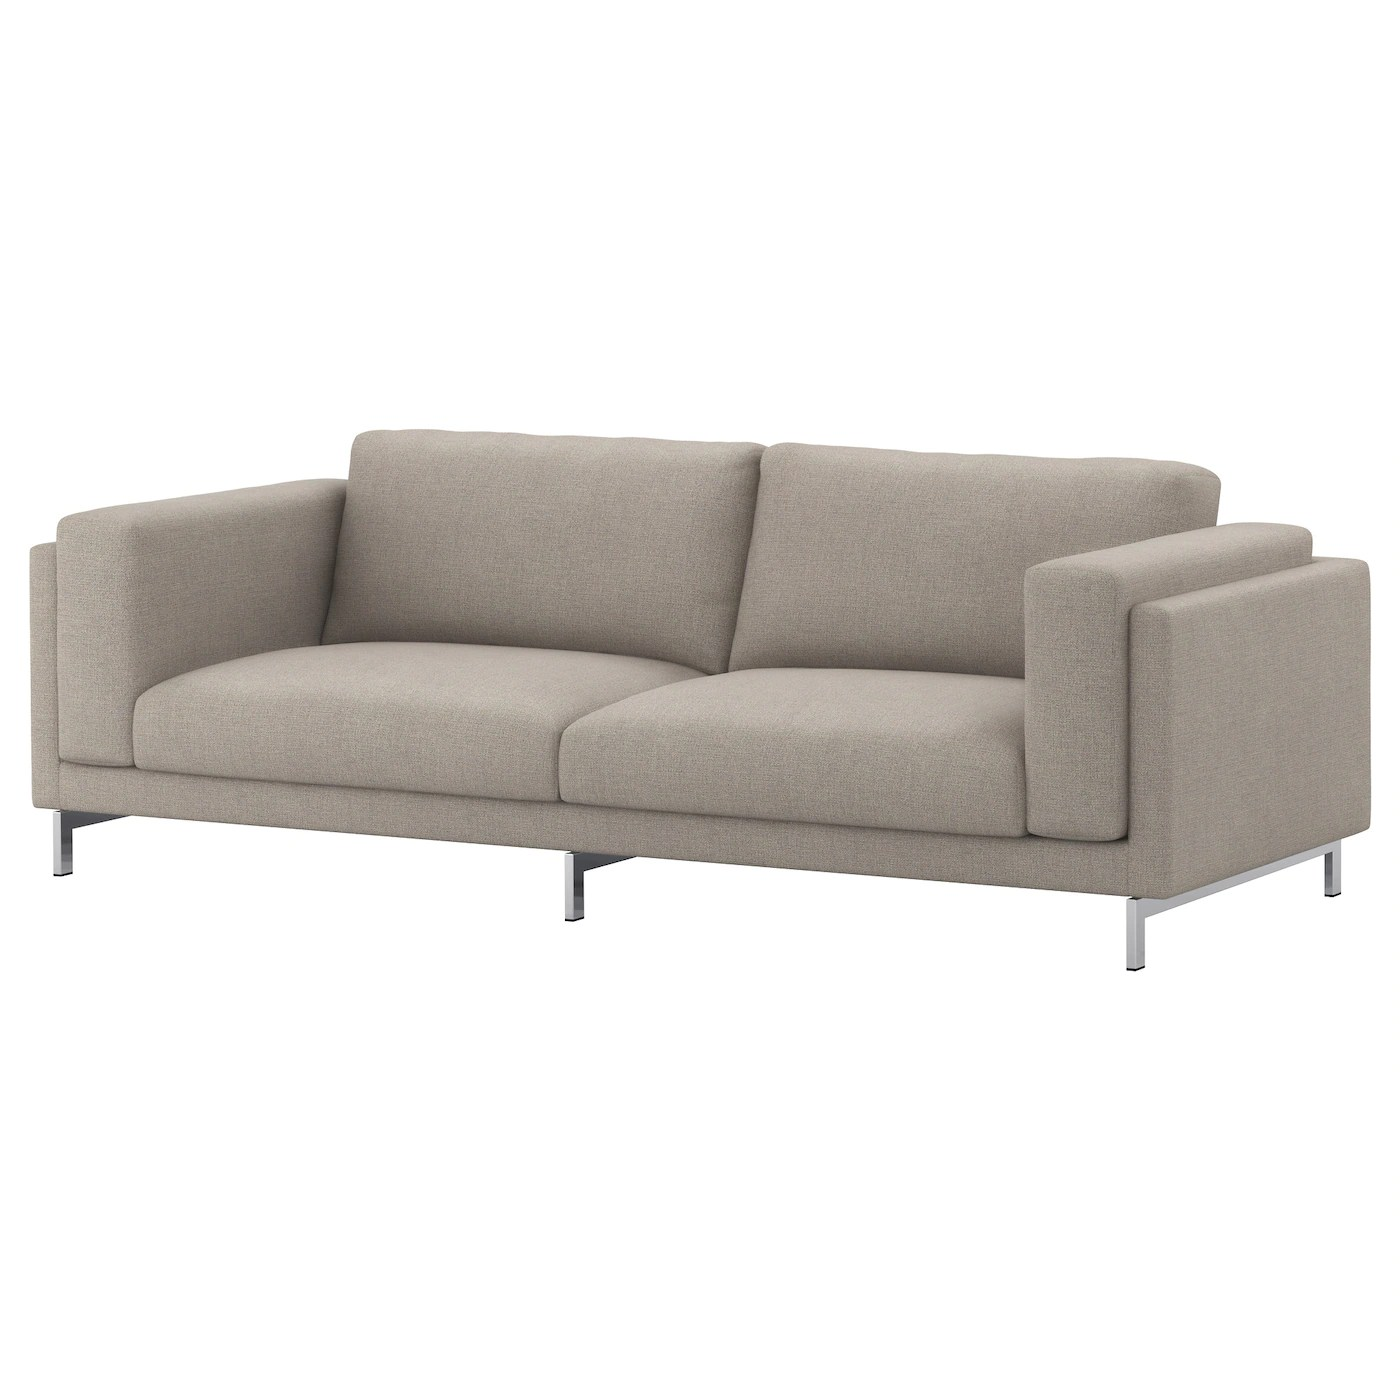 Ikea Nockeby Sofa Nockeby Legs For 3-seat Sofa Chrome-plated - Ikea